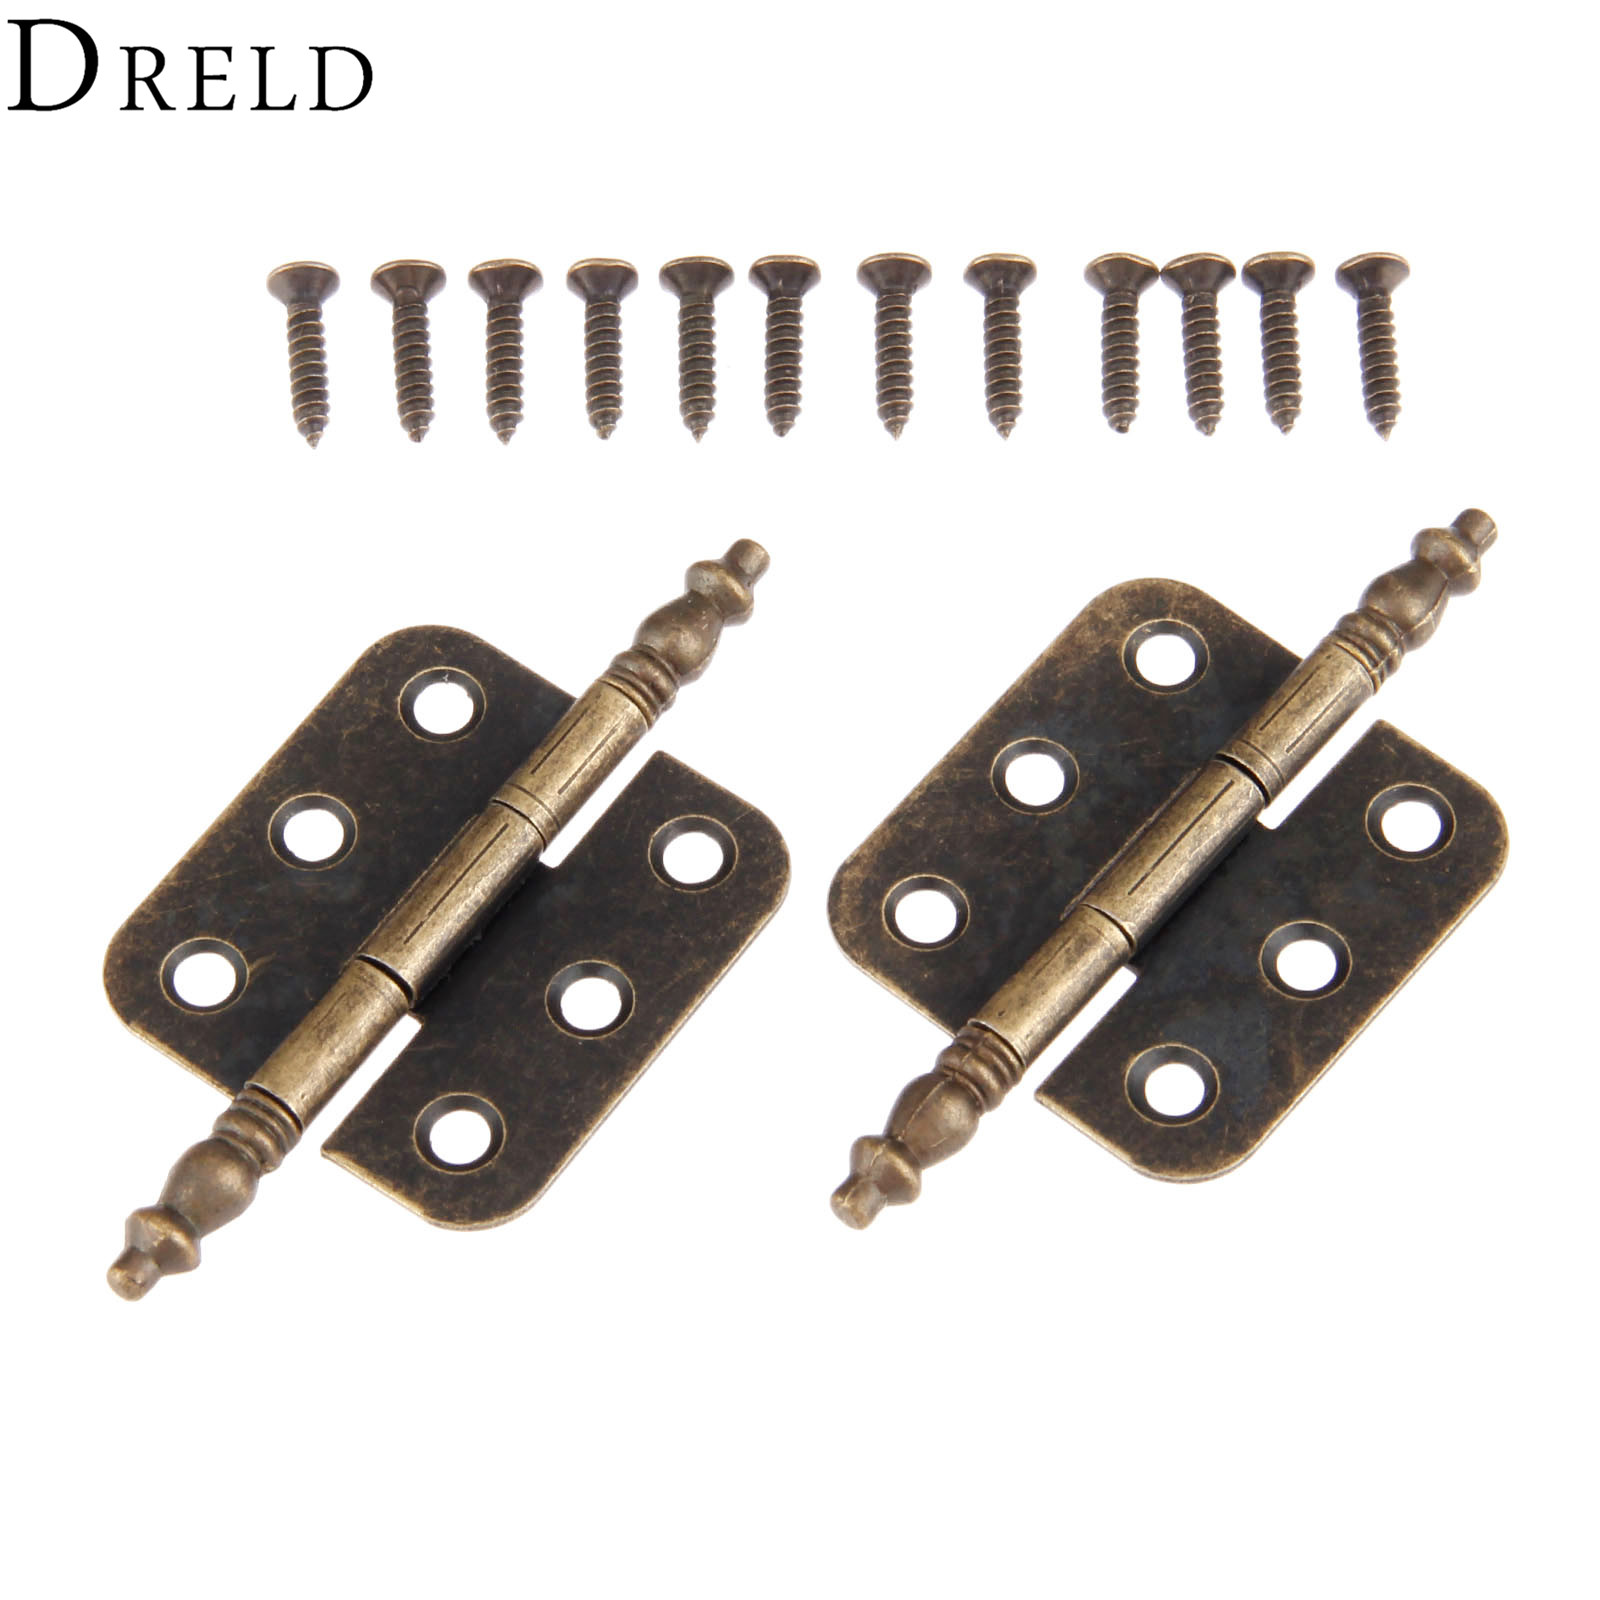 DRELD 2Pcs 70*35mm Antique Door Cabinet Hinges 6 Holes Jewelry Gift Box Drawer Cupboard Decorative Hinge For Furniture Hardware